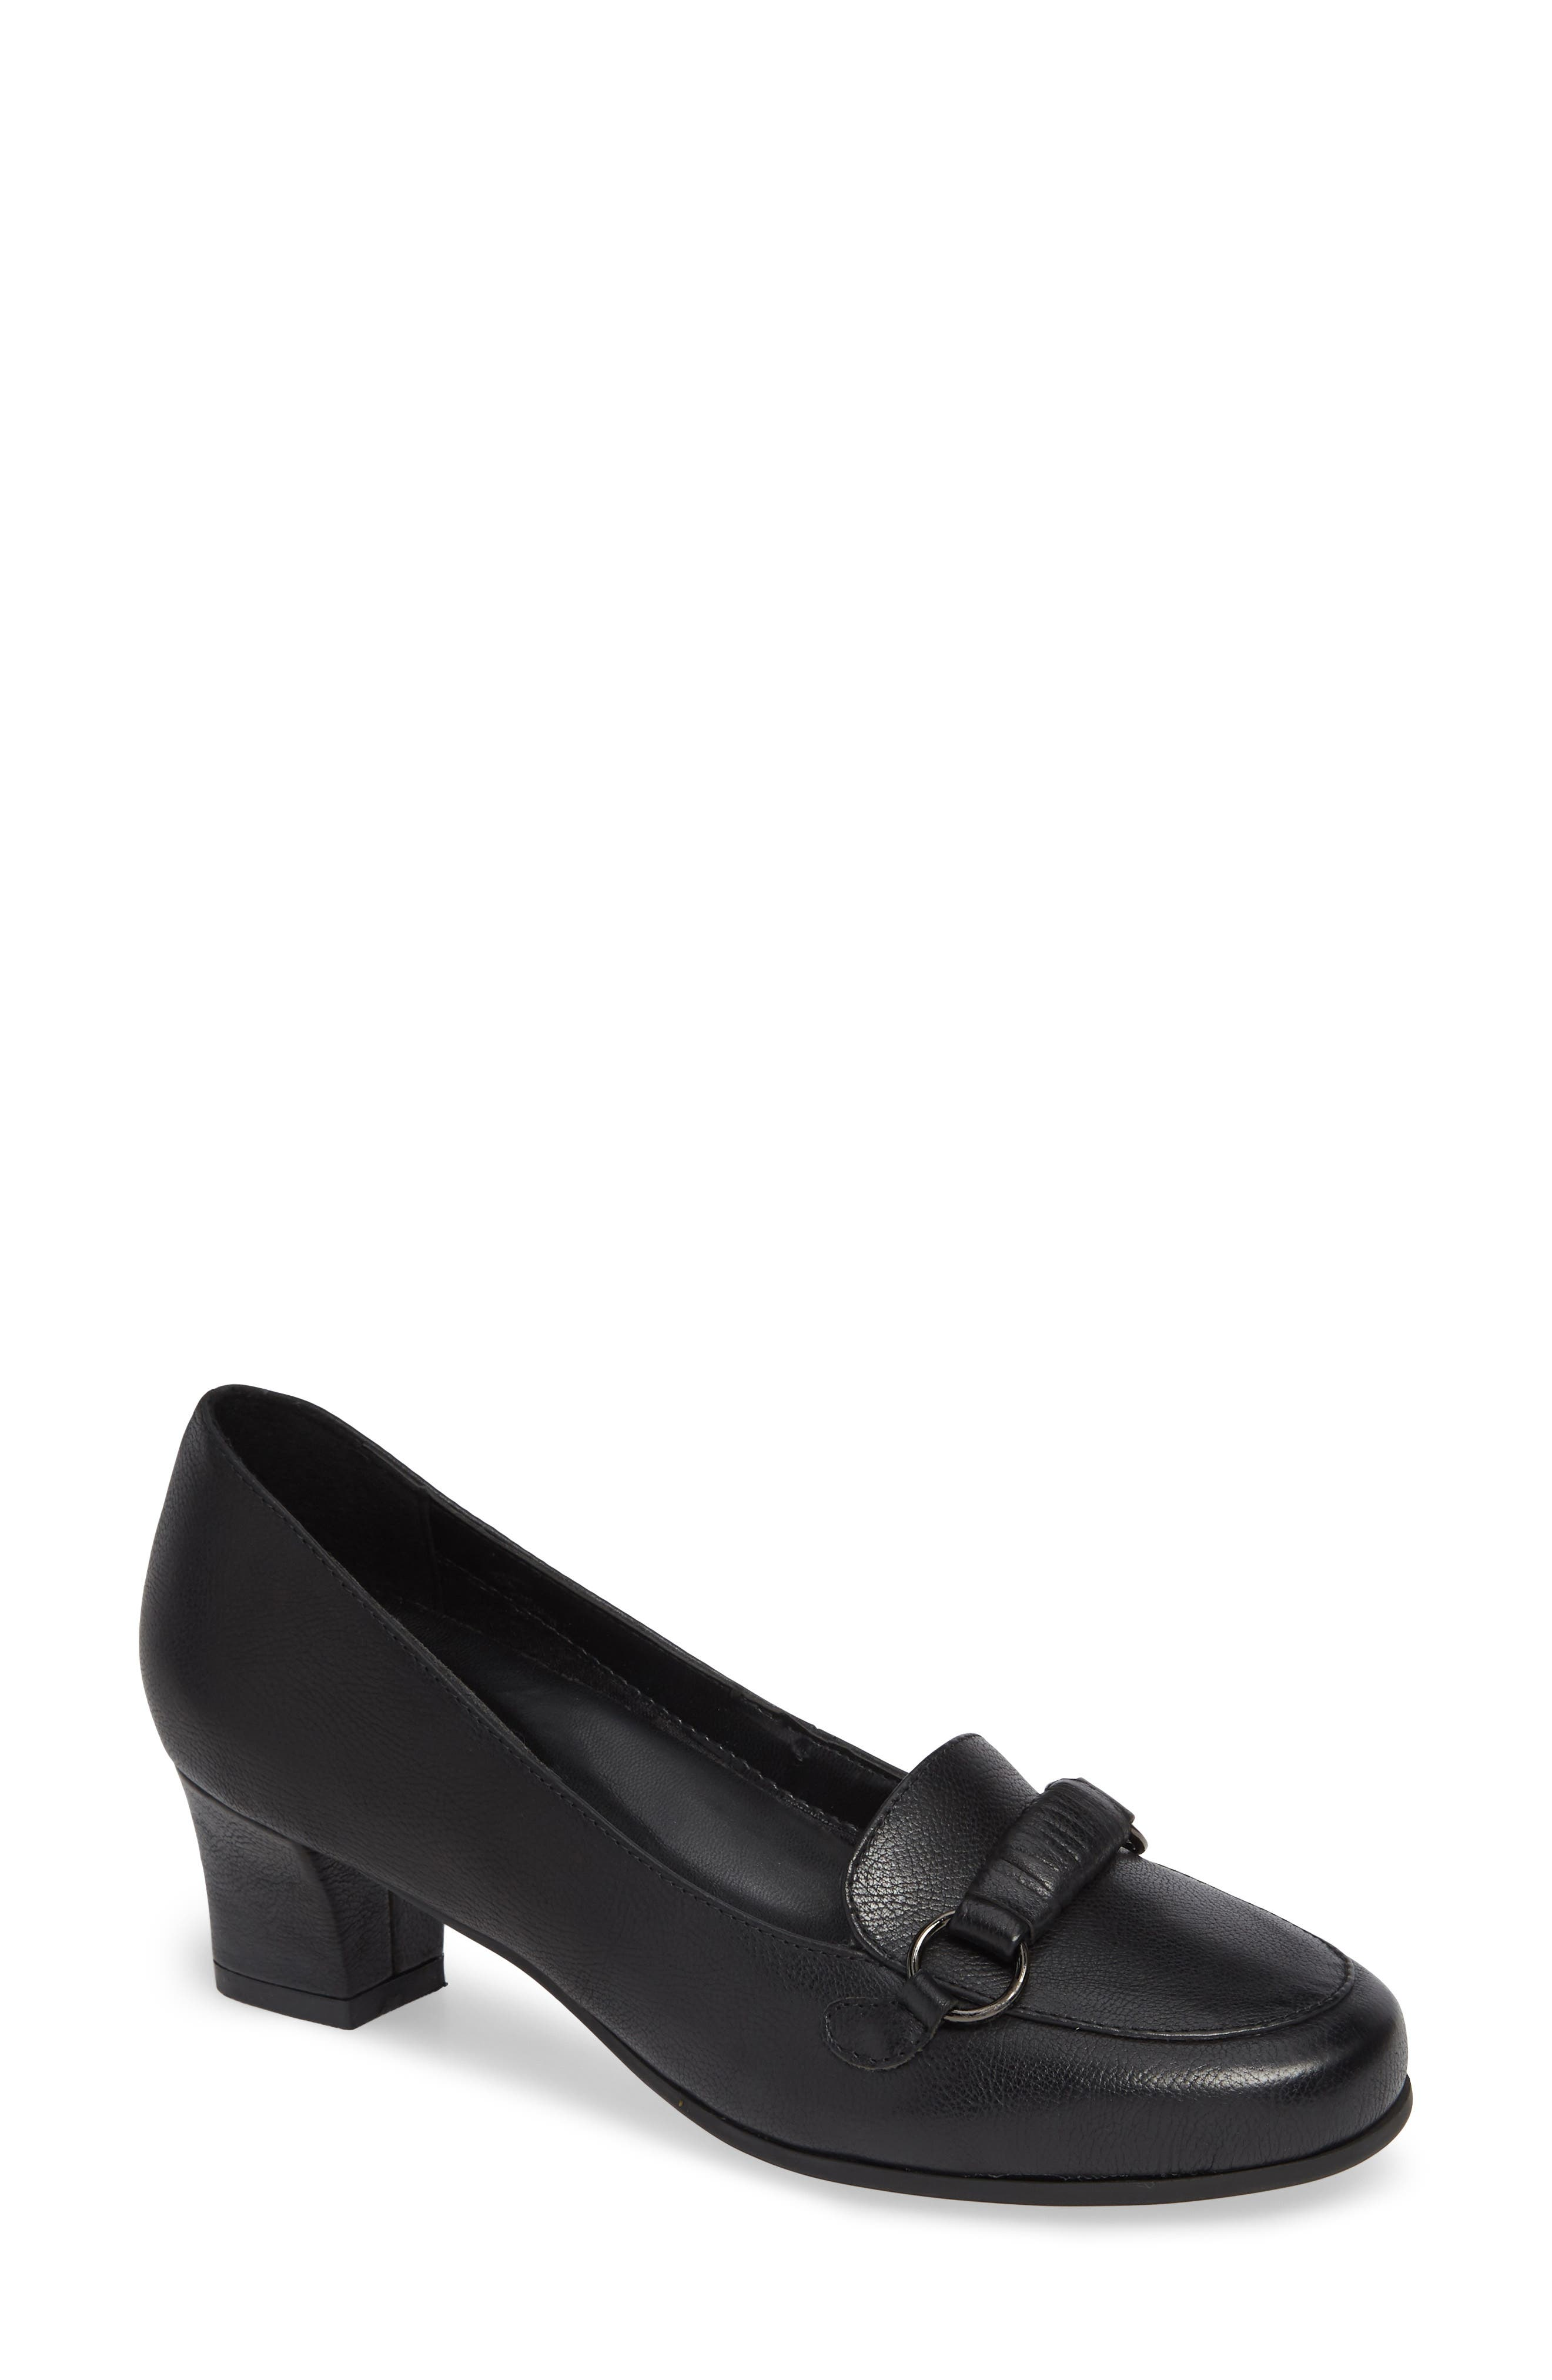 Perky Loafer Pump,                             Main thumbnail 1, color,                             BLACK LEATHER